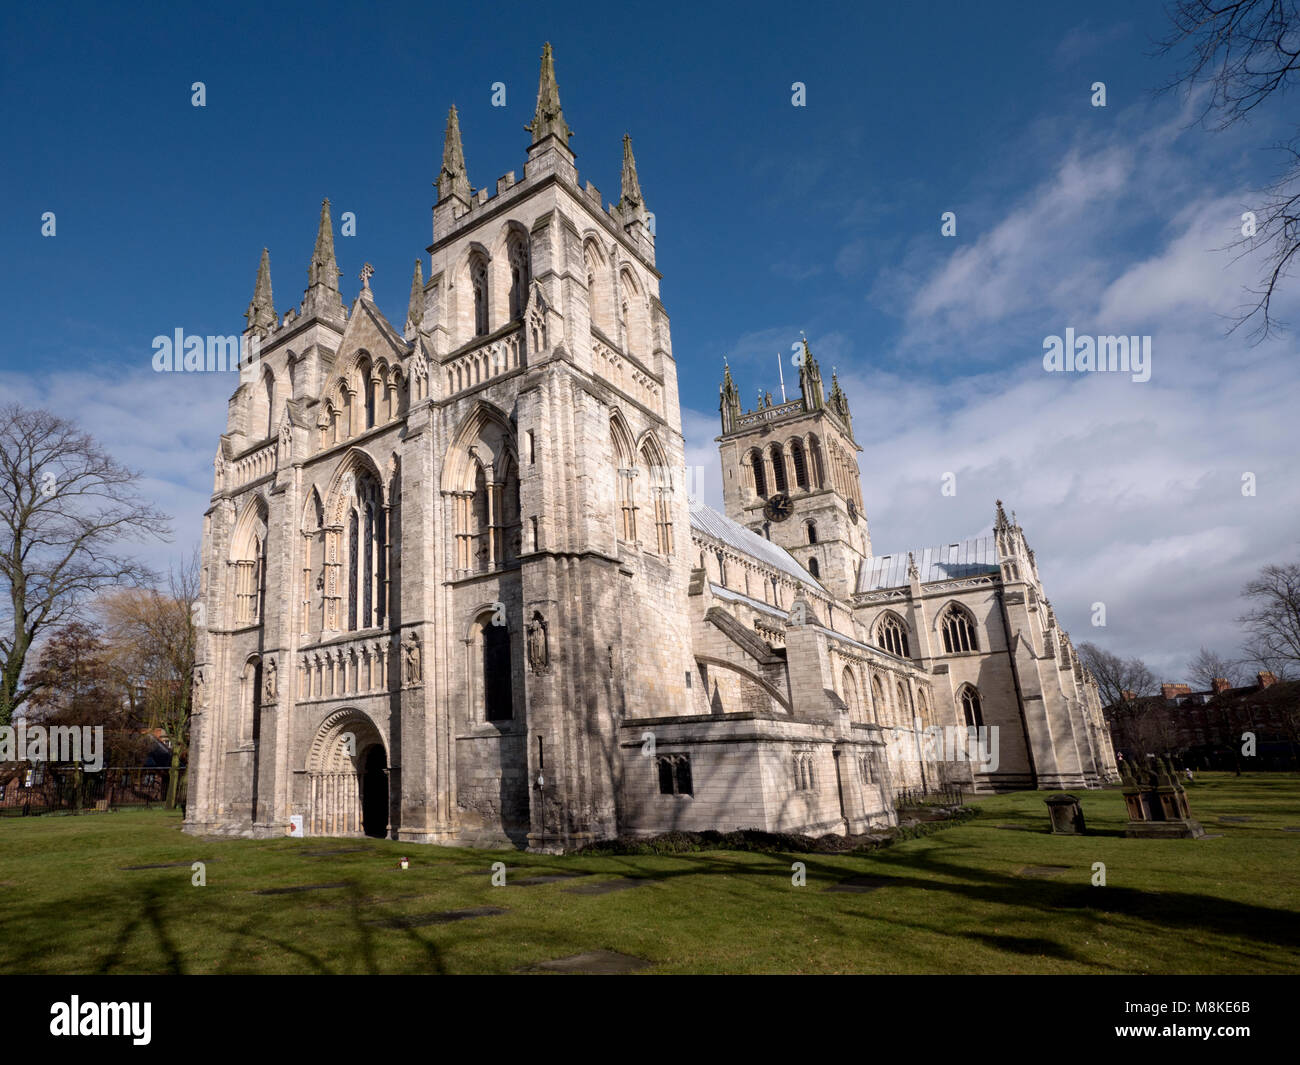 Selby Abbey, Selby, Yorkshire, England, UK - Stock Image